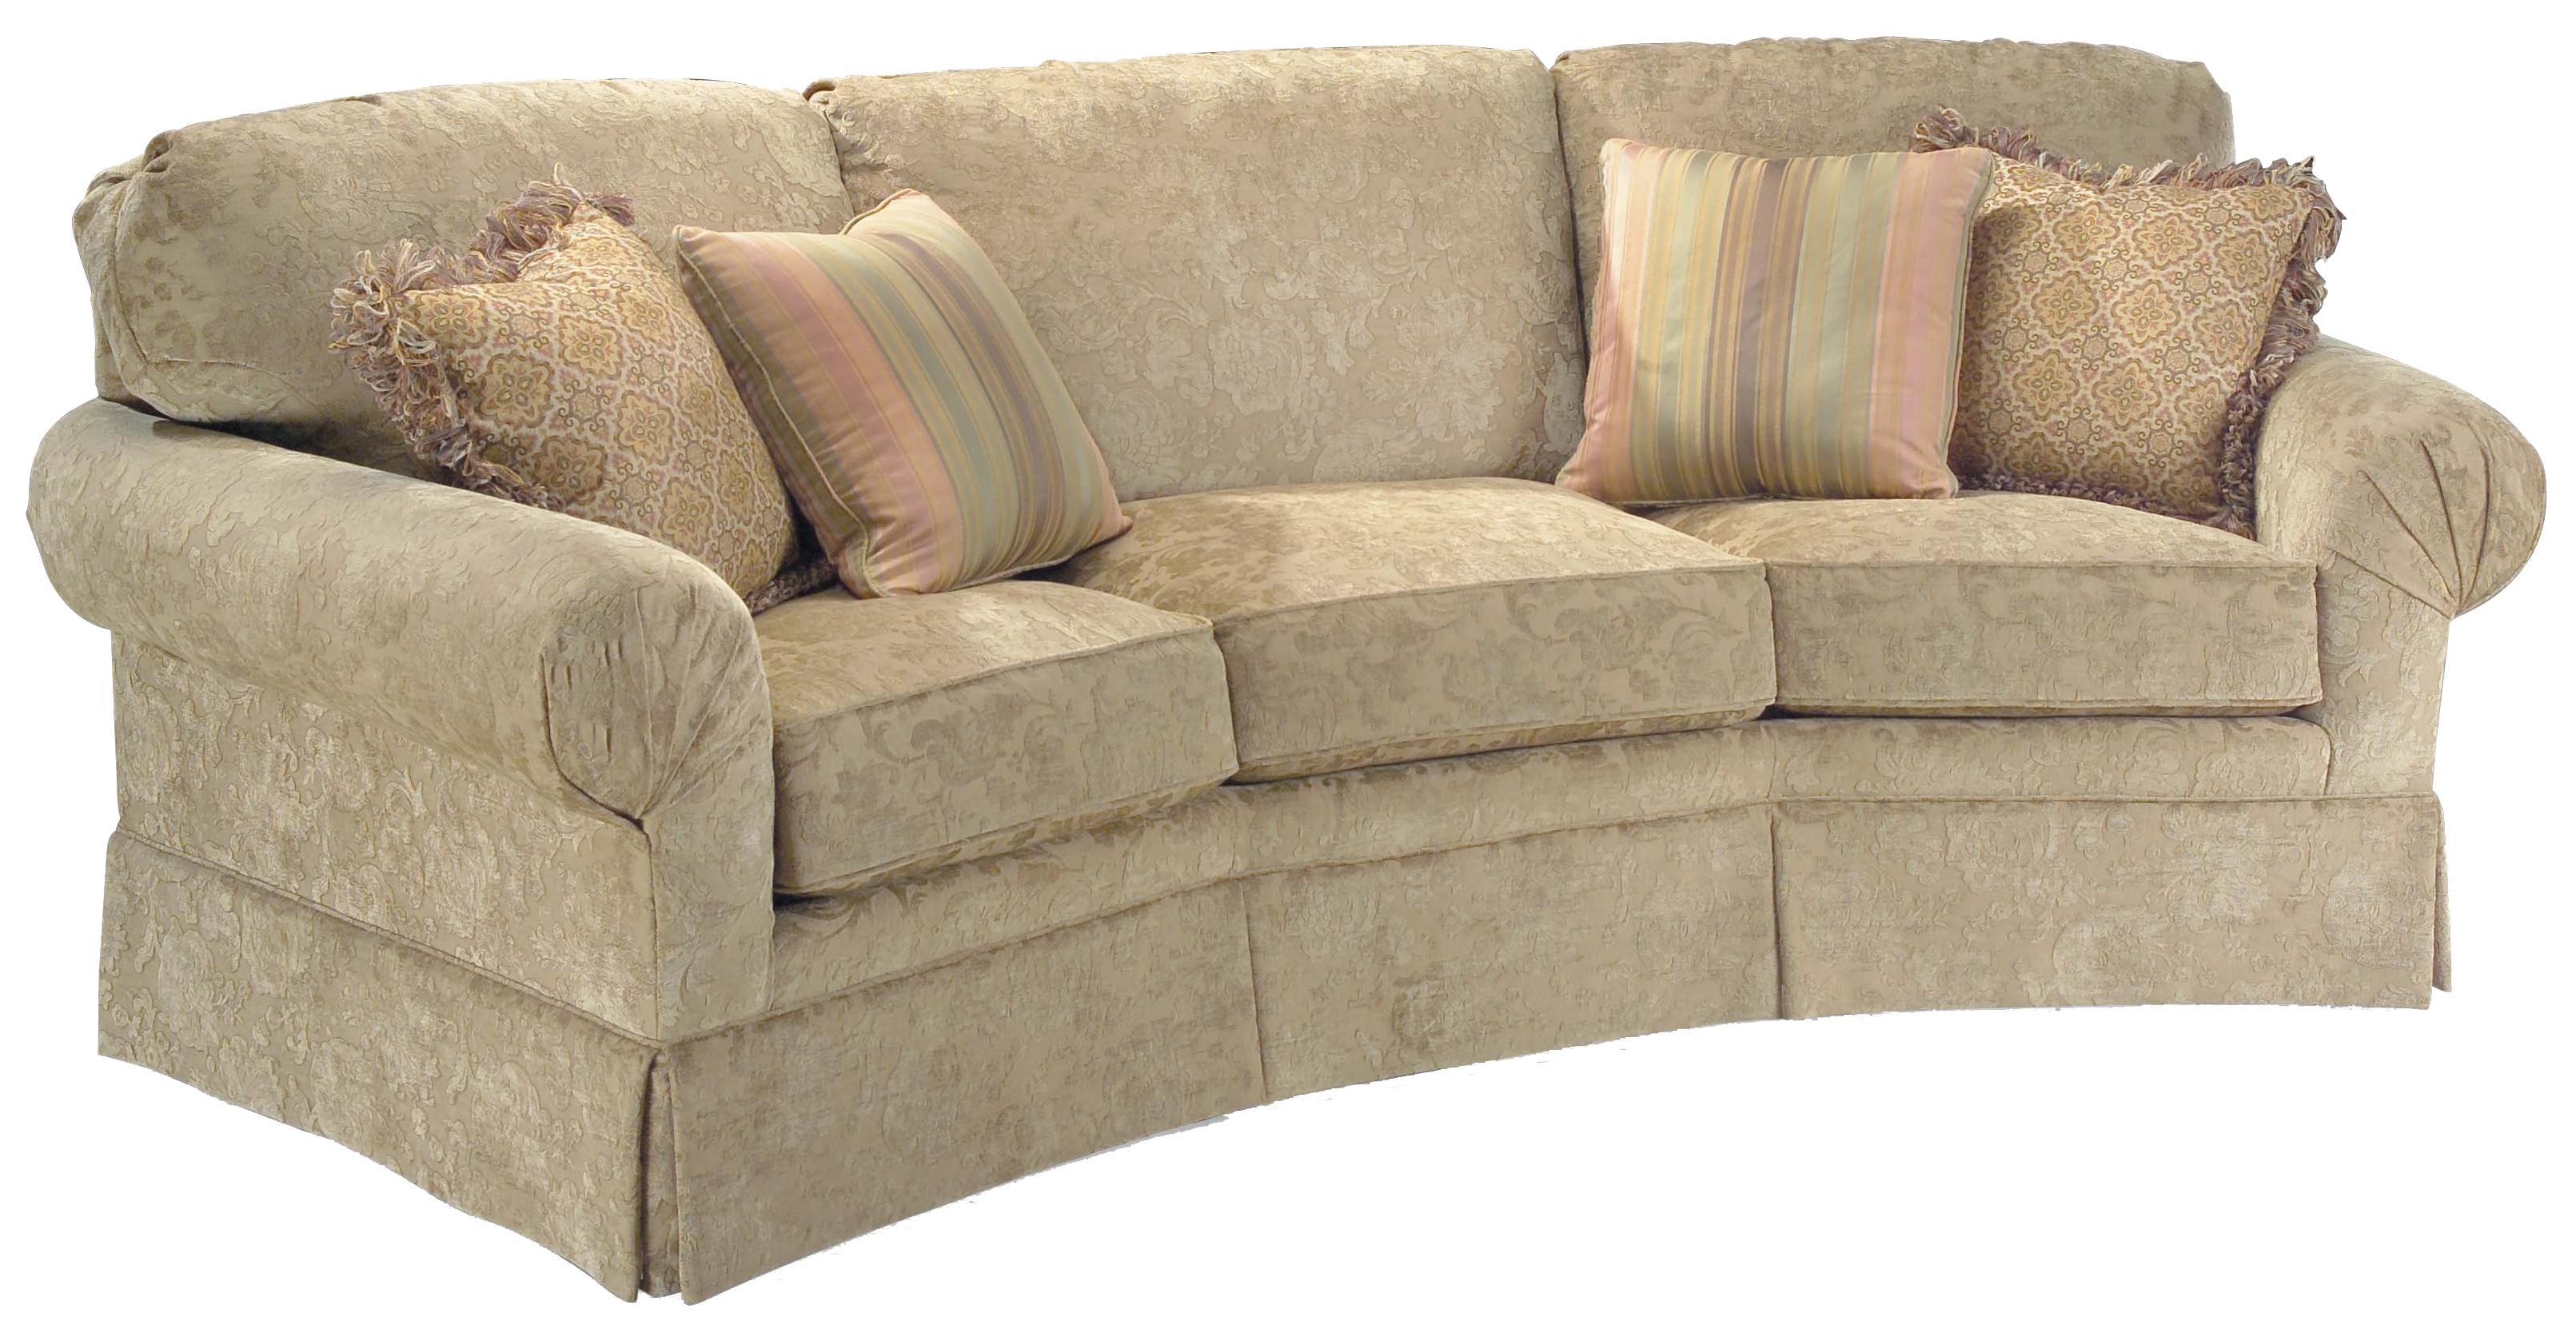 Fairfield 3766 Corner Sofa With Sea